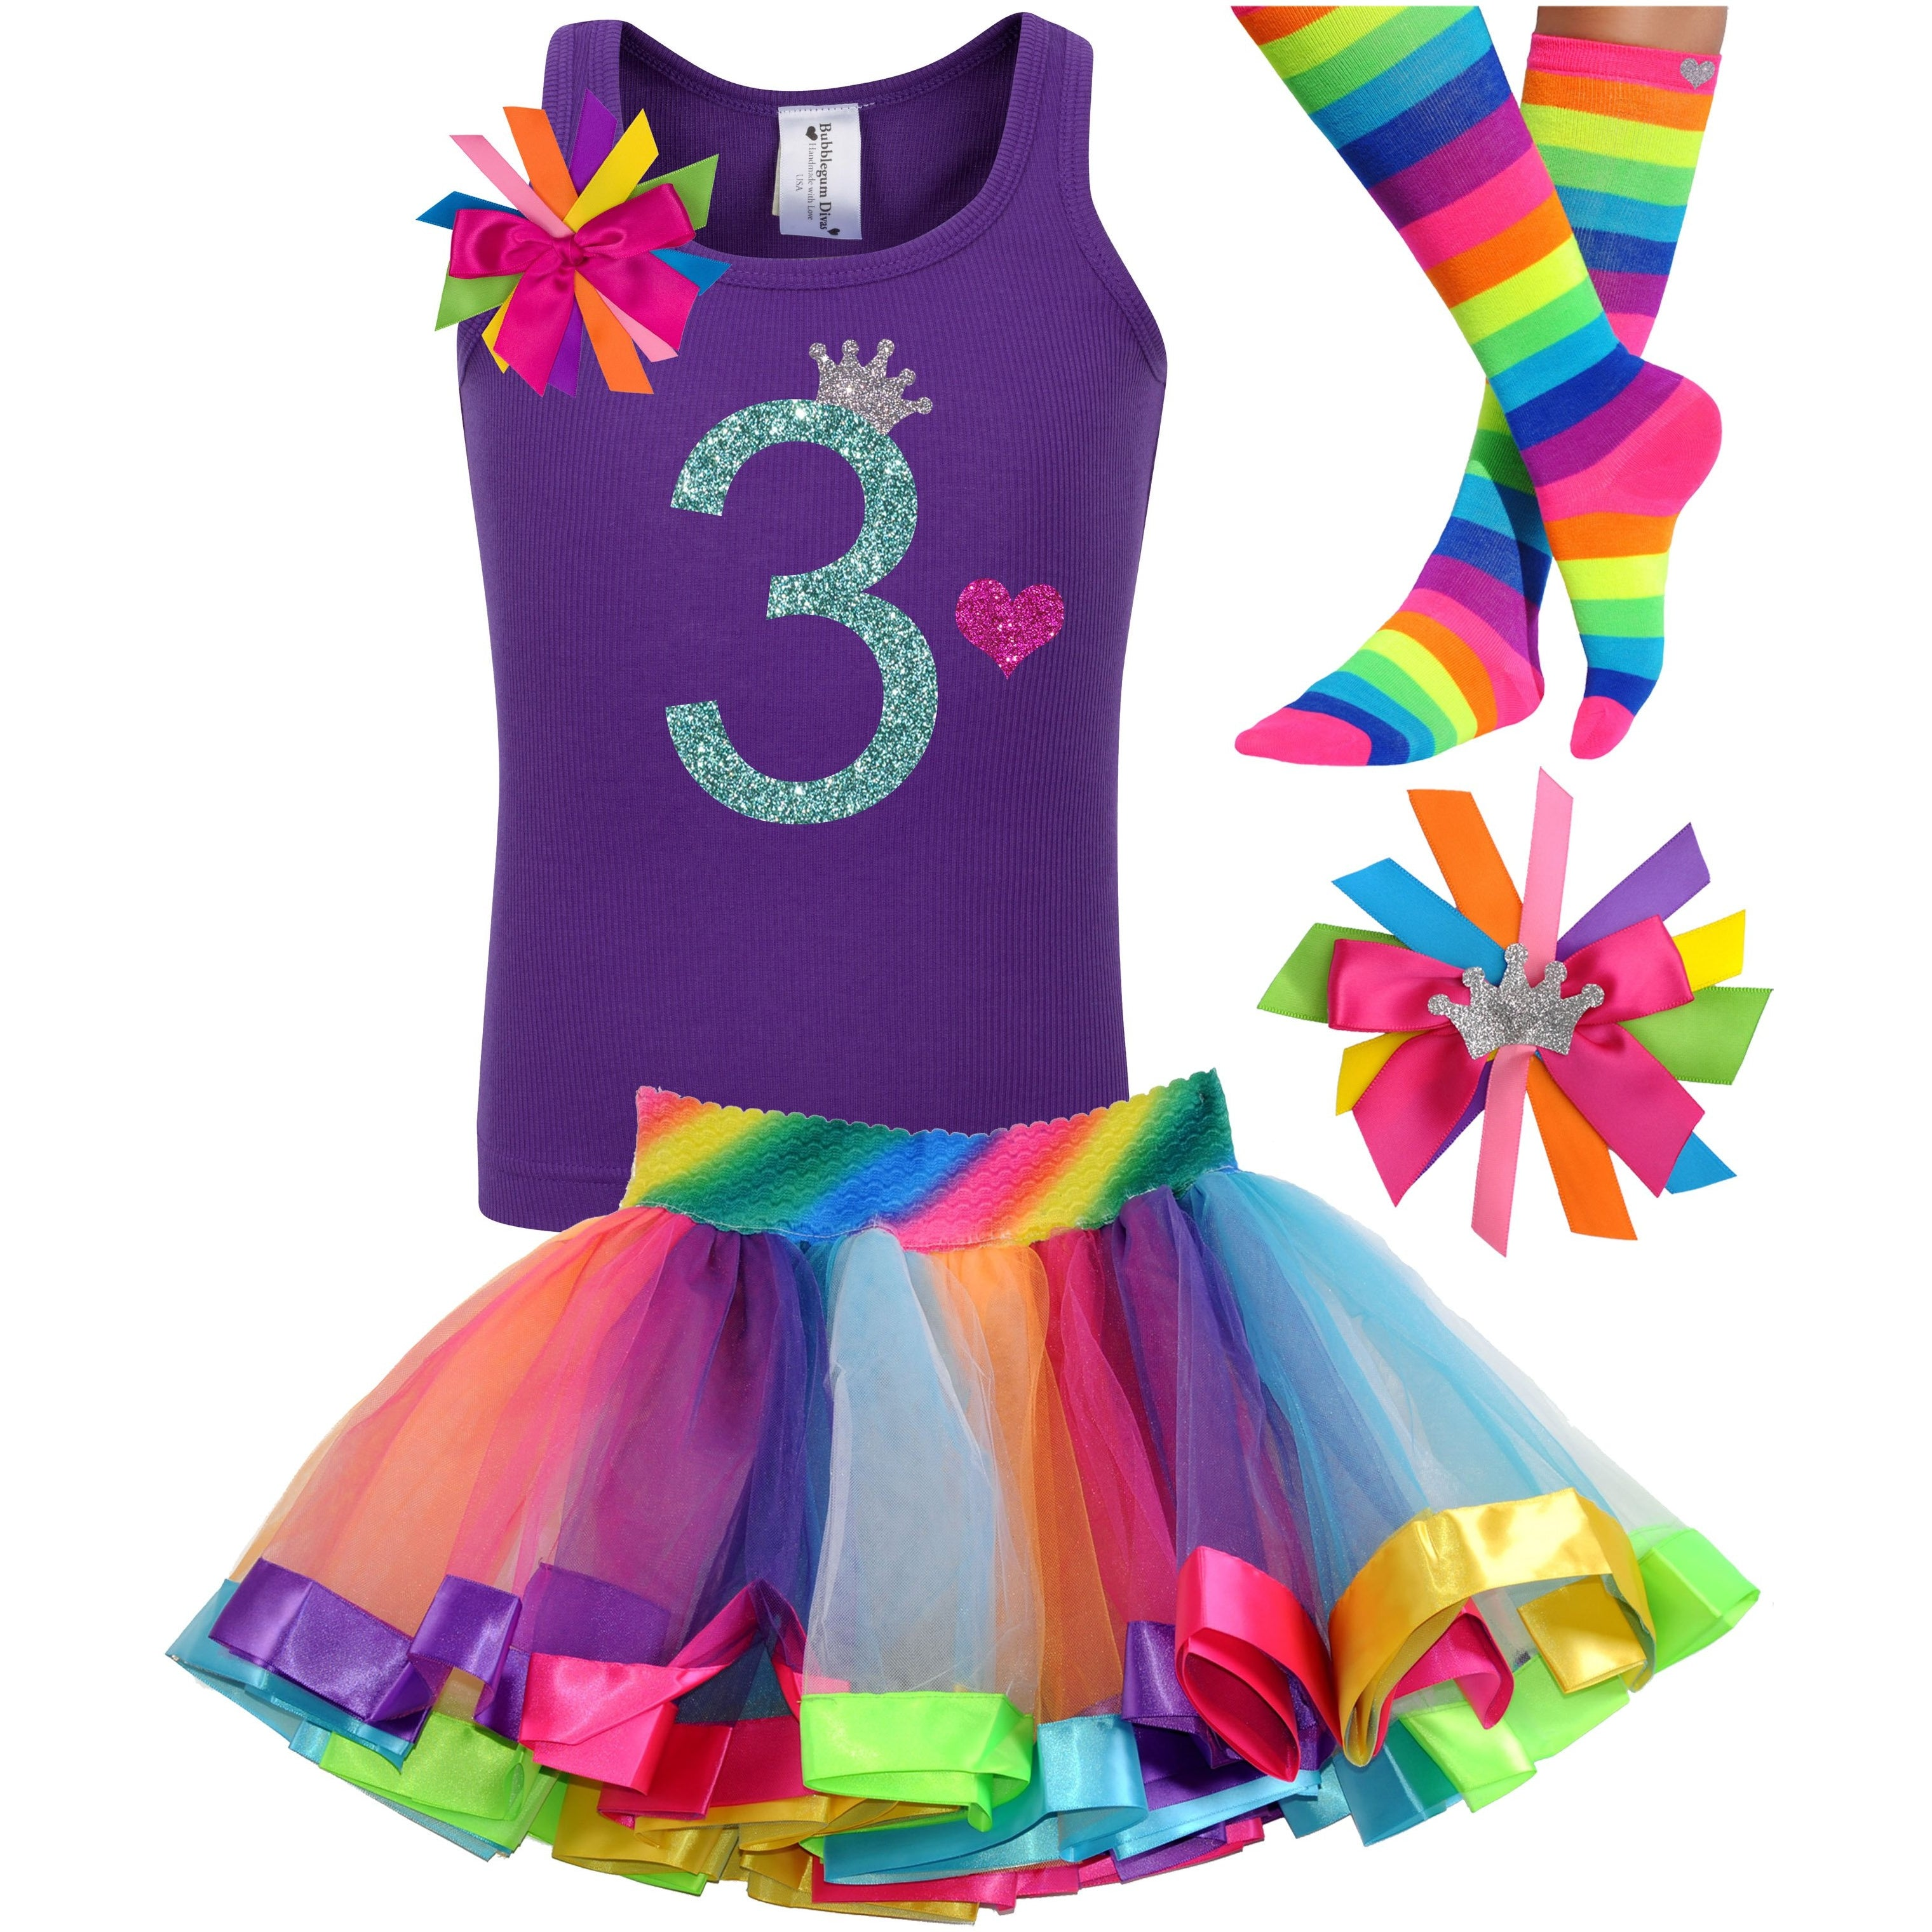 3rd Birthday Jade Glitter Shirt Girls Rainbow Tutu Party Outfit 4PC Set - Outfit - Bubblegum Divas Store